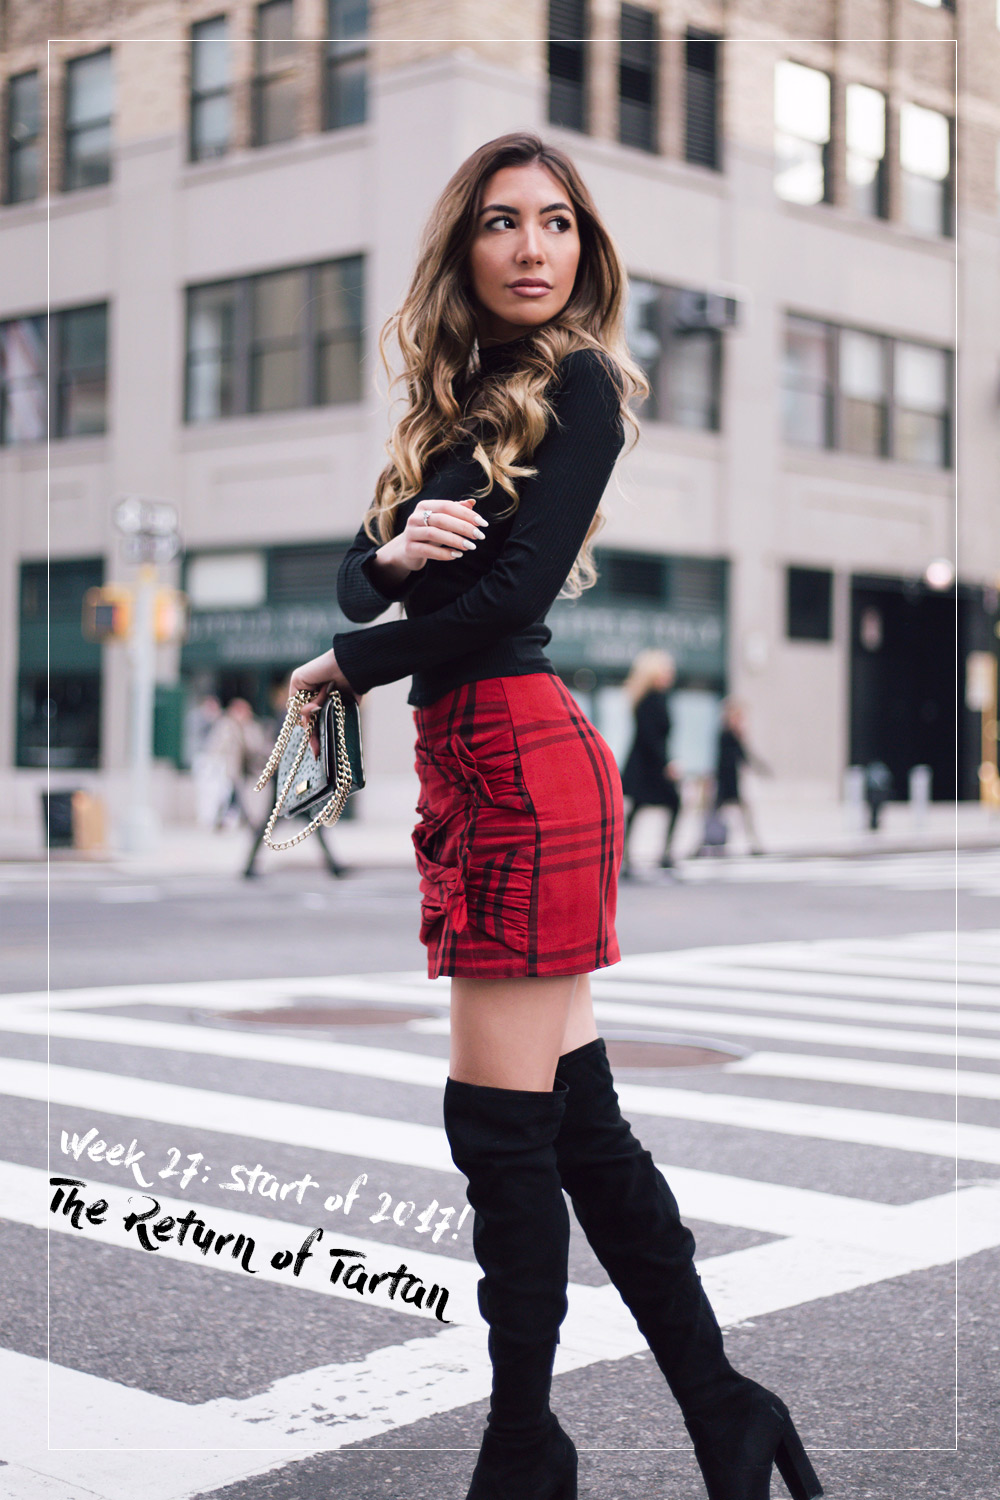 Blogger wearing tartan skirt with black boots. Winter style 2017.